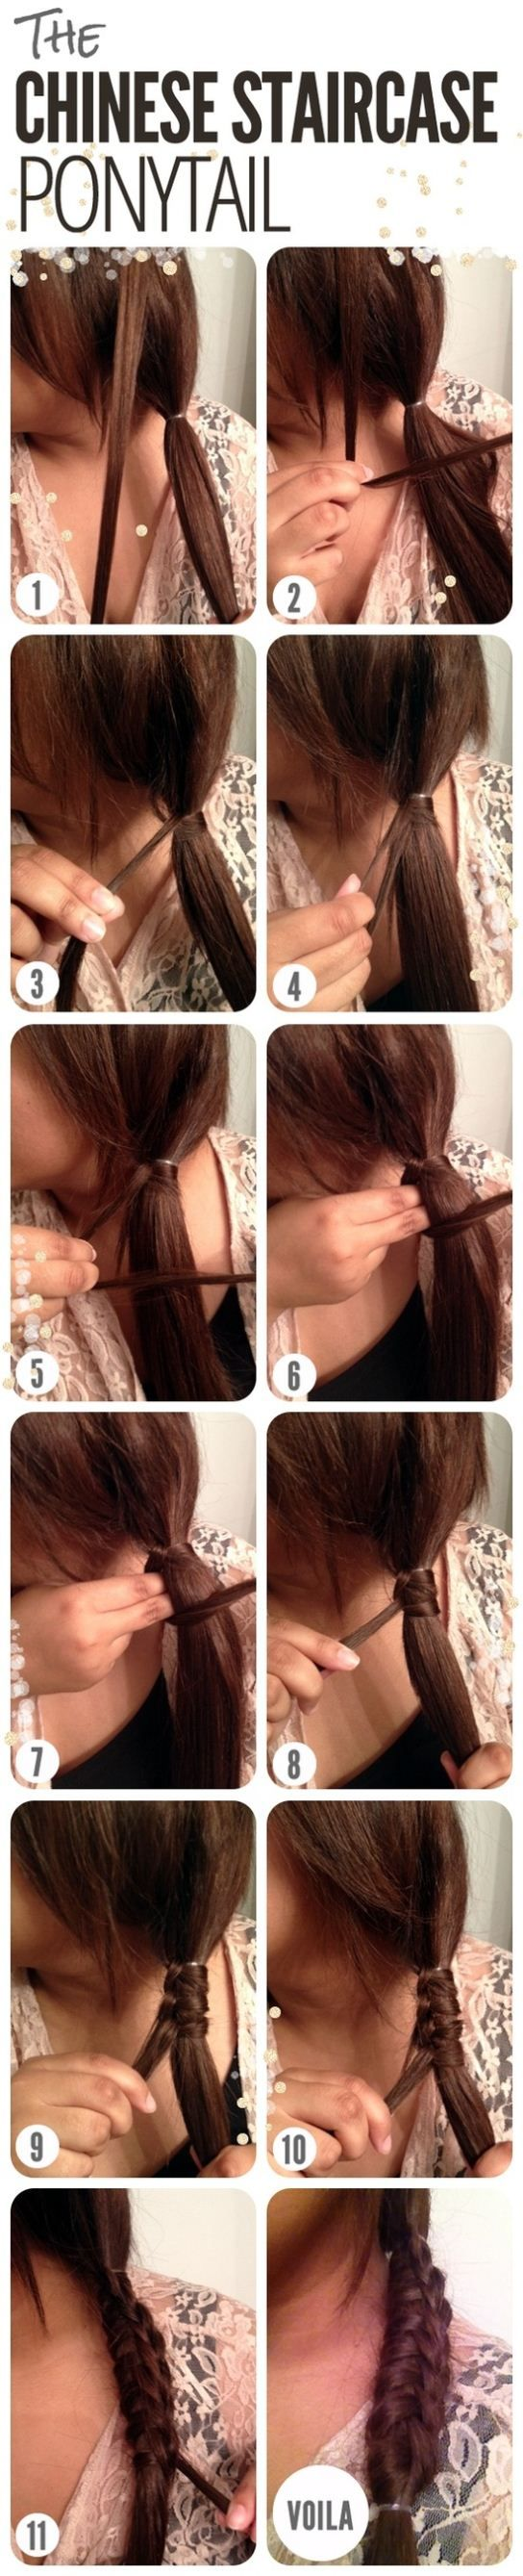 If you are always wondering what kind of hairstyle to wear before going out, today we can provide you with 13 interesting ideas about everyday hairstyles to help you look glamorous in this totally new season. For girls who love romantic hairstyles, you can DIY waterfall plait hairstyle by yourself at home. You'll find it[Read the Rest]